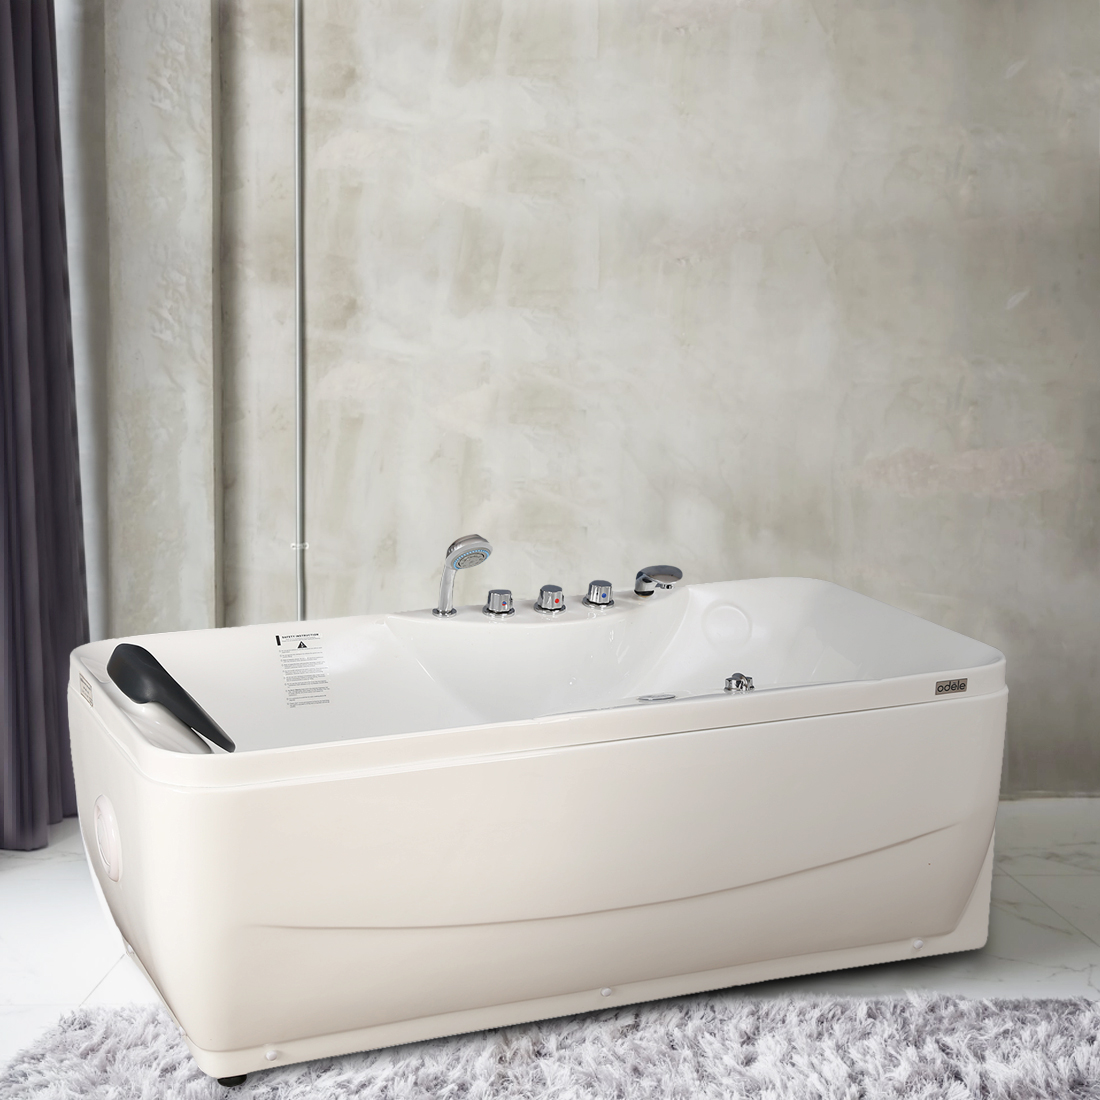 Briny Bath Tub in White Colour by HomeTown